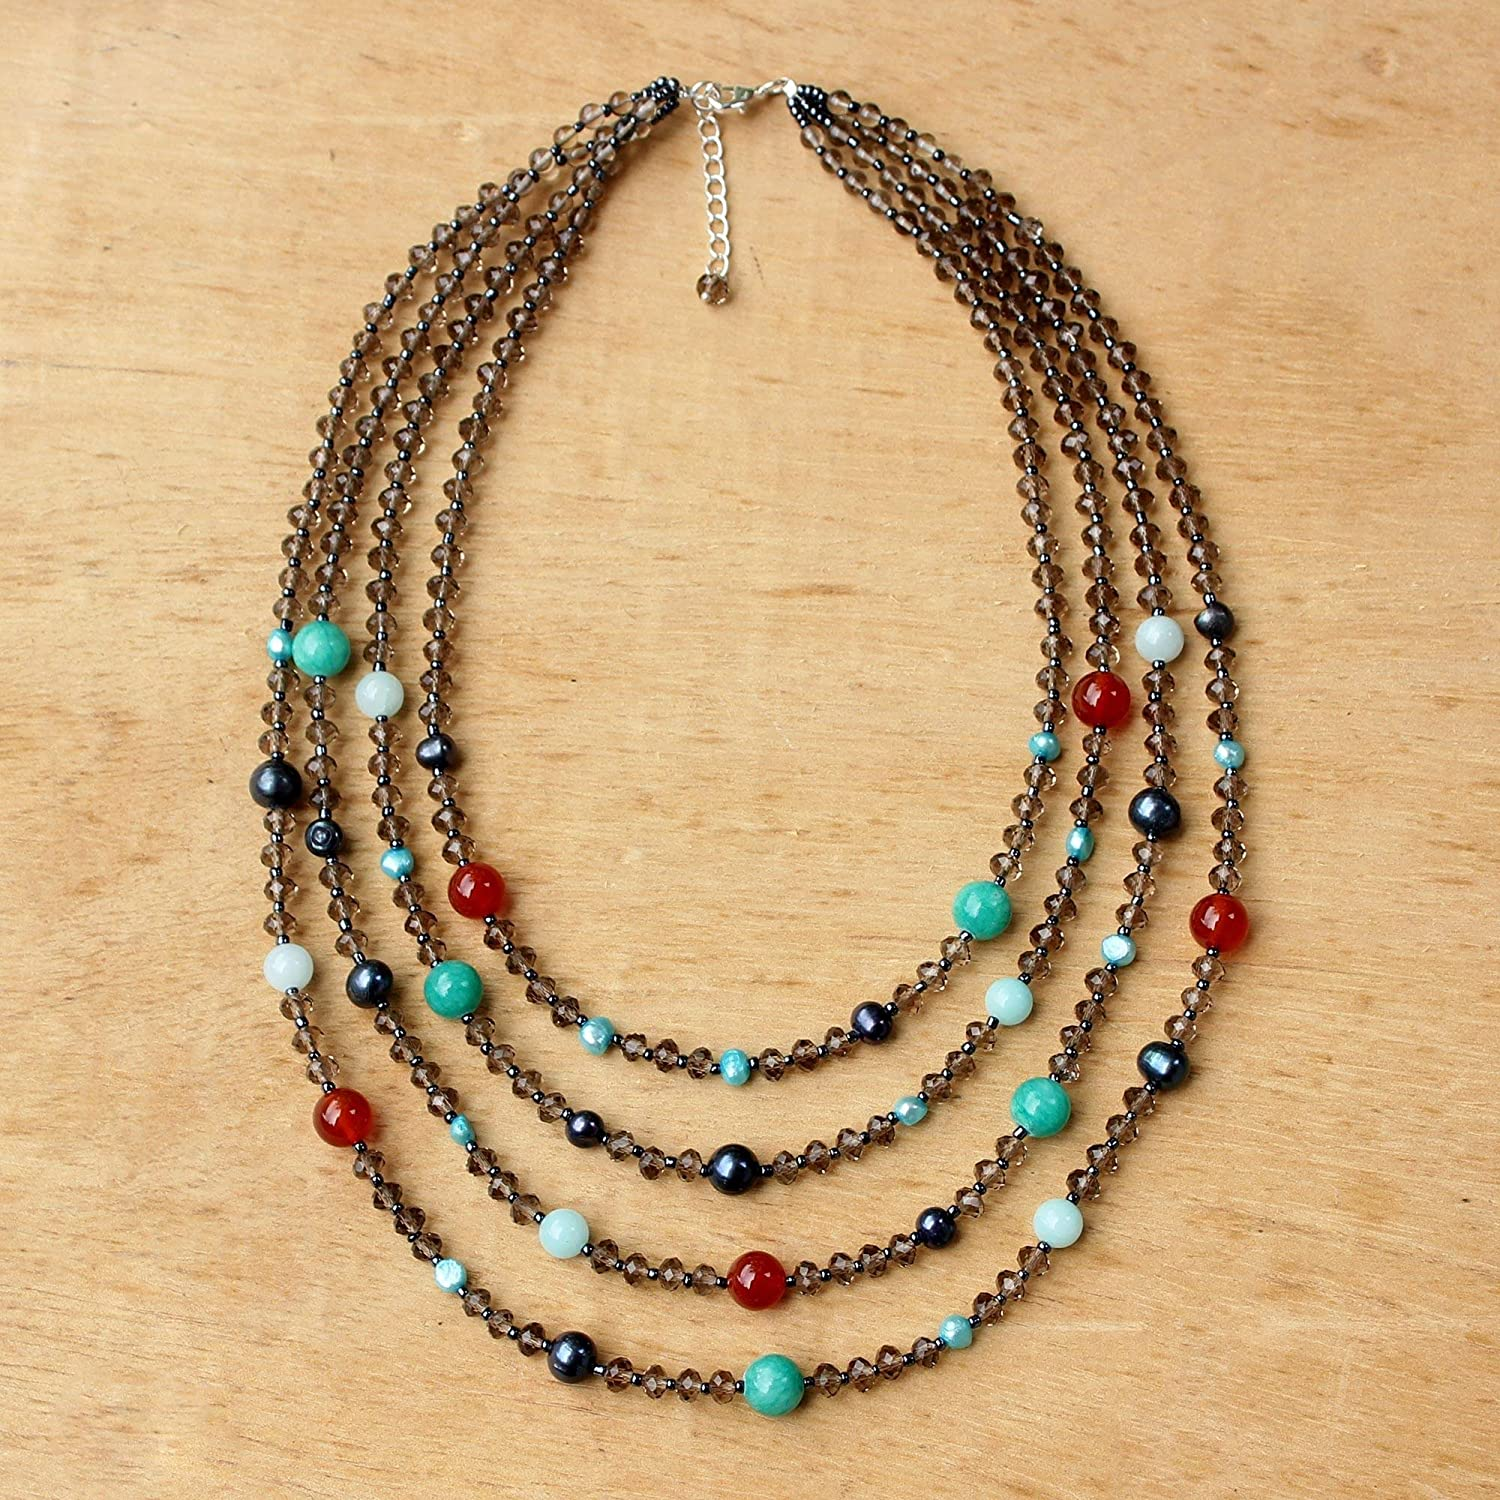 NOVICA Freshwater Cultured Pearl with Carnelian and Calcite Stone Necklace, Season Glamour